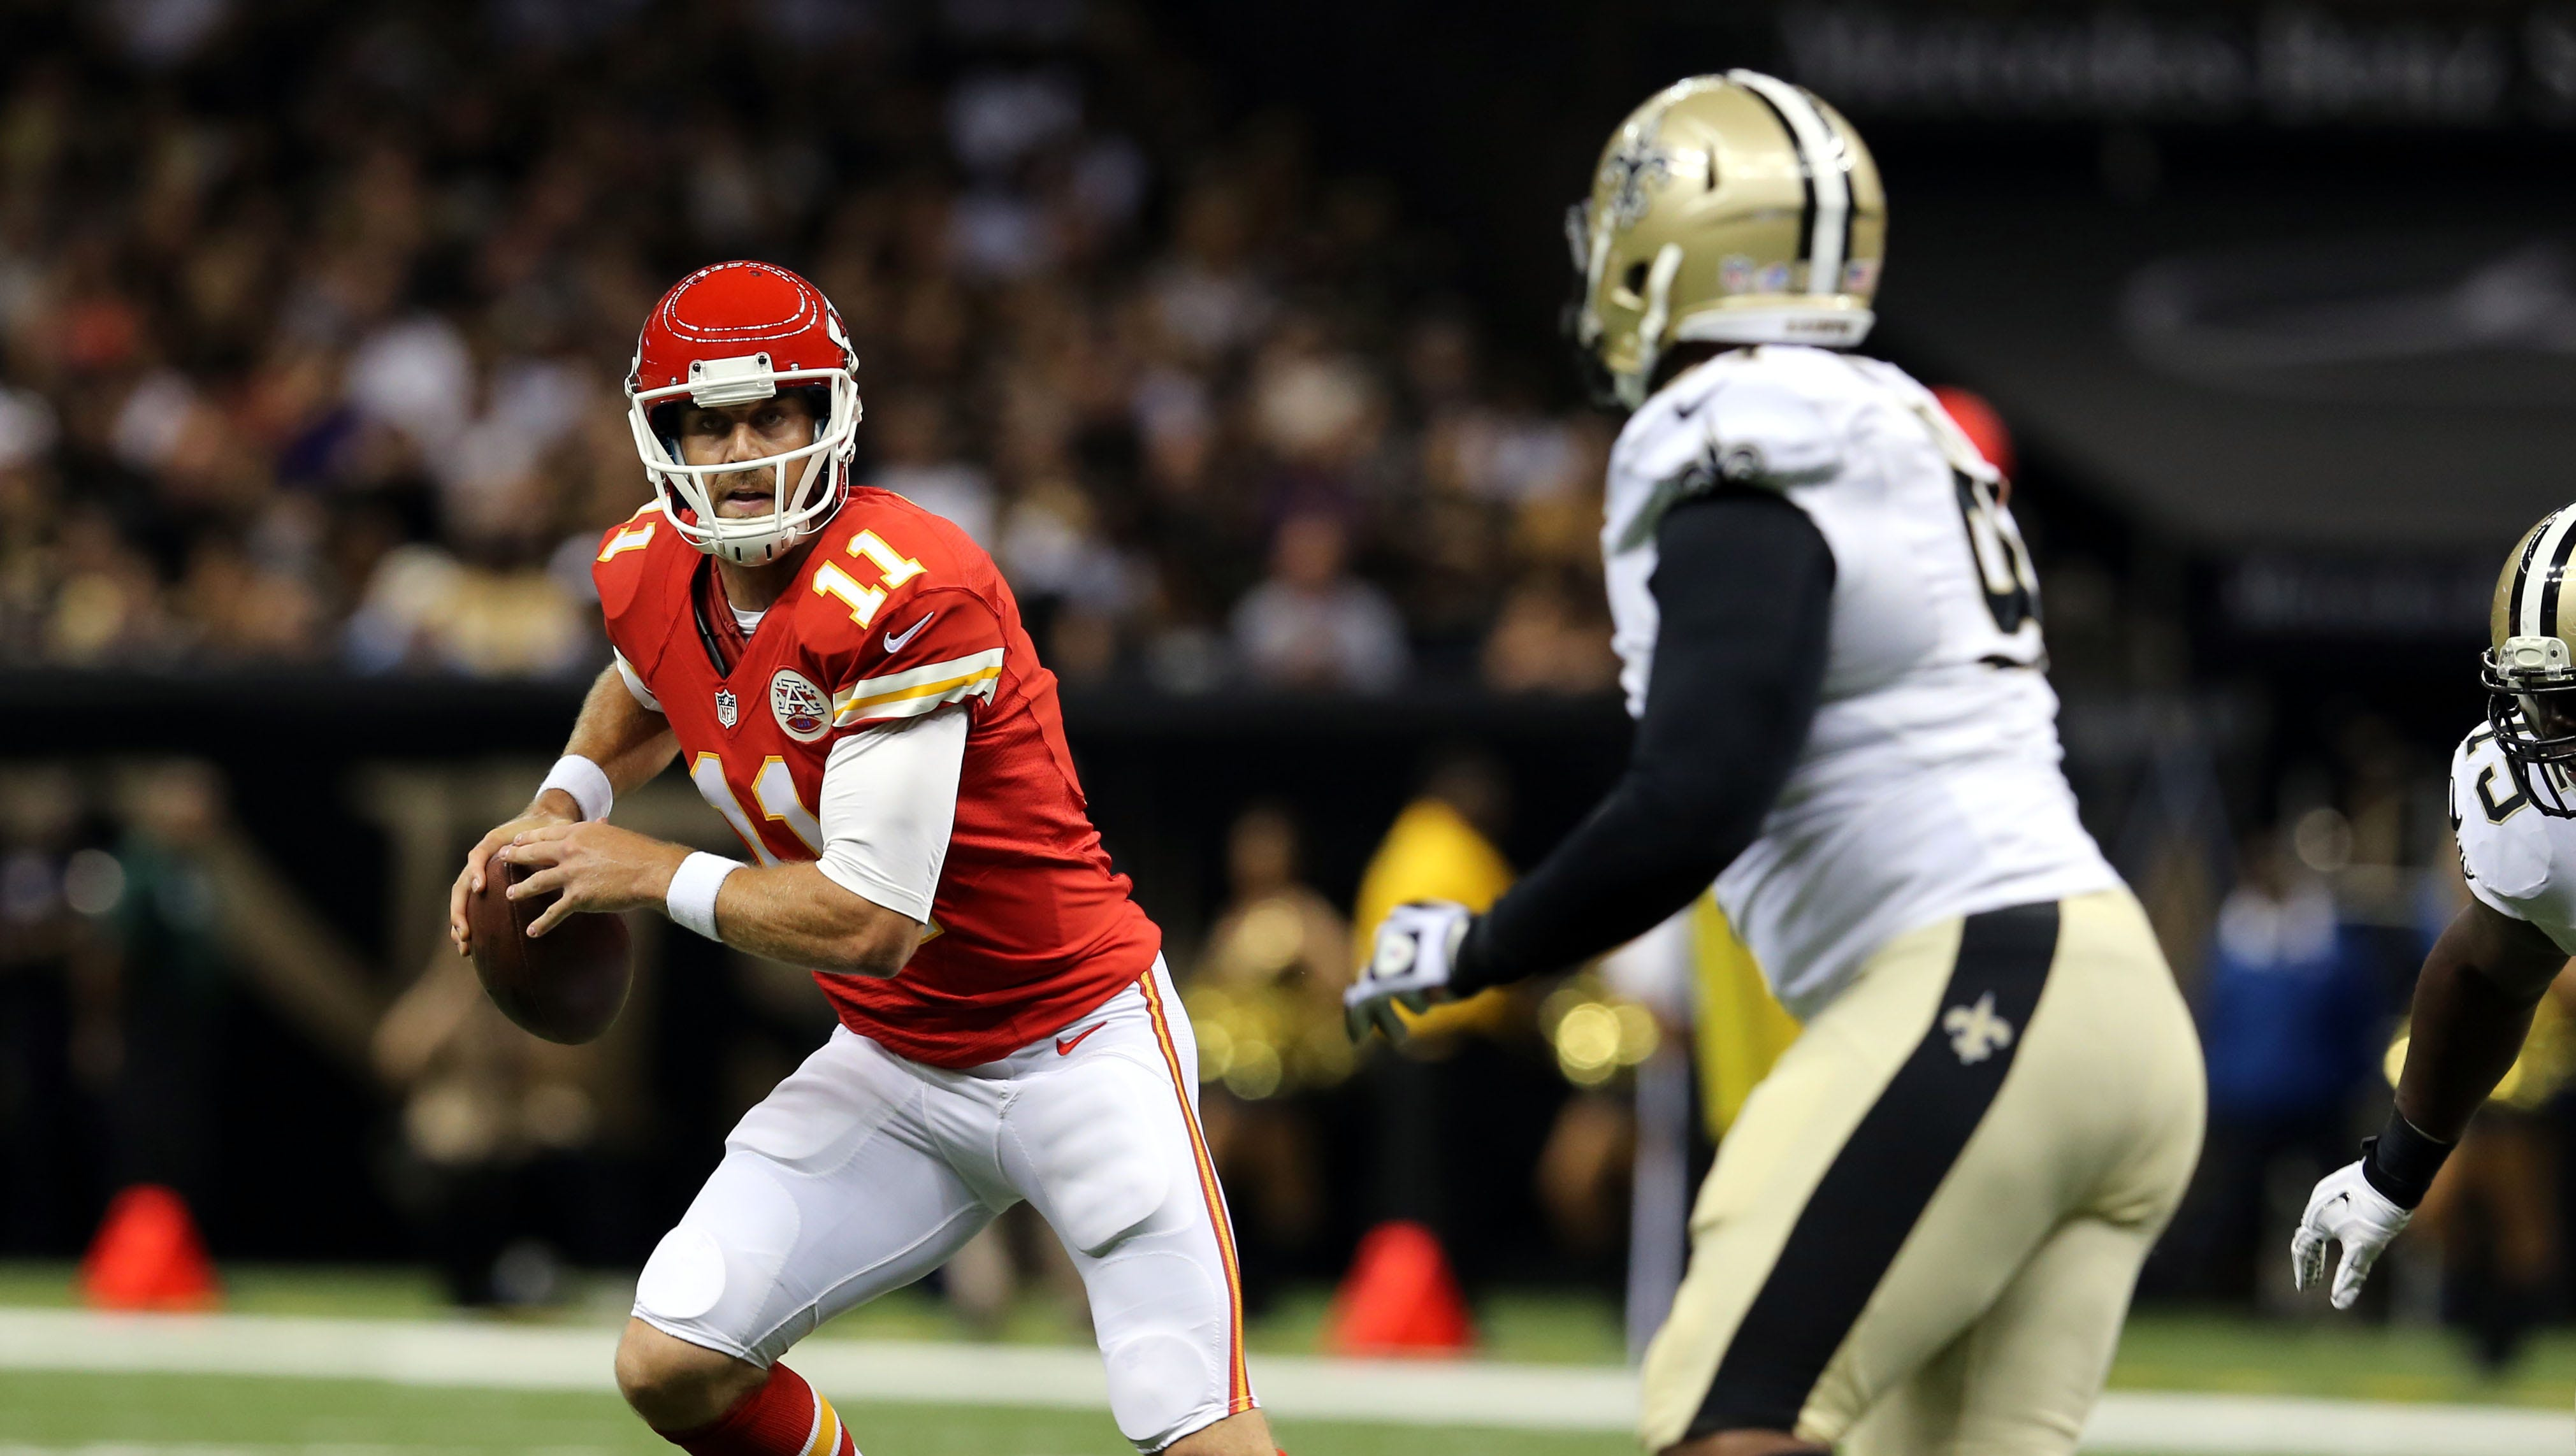 Kansas City Chiefs quarterback Alex Smith (11) rolls out while pressured by New Orleans Saints defensive end Cameron Jordan (94).